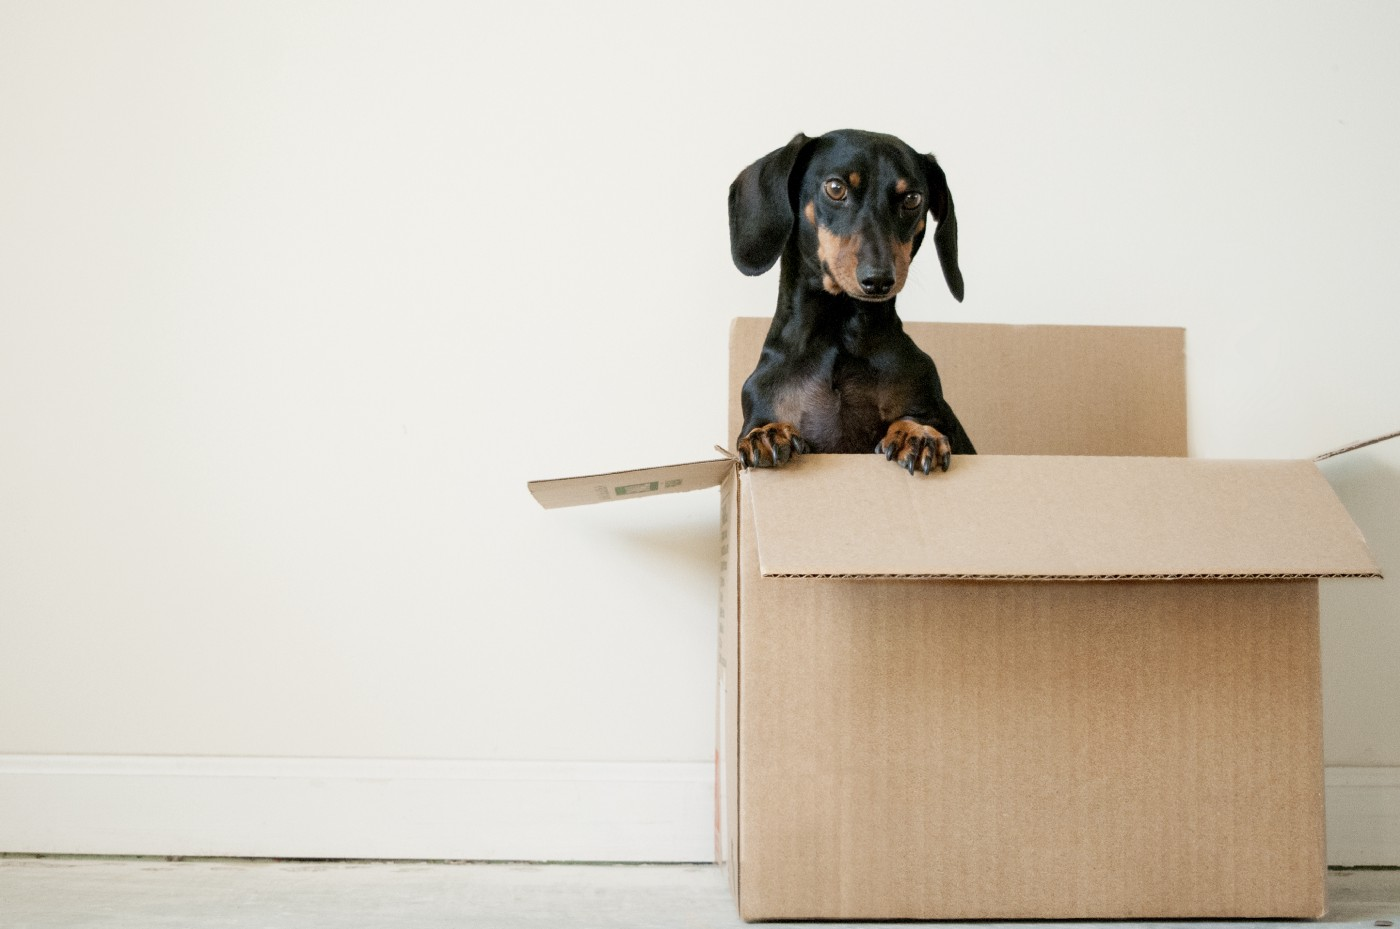 A black and brown dachshund stands in cardboard box